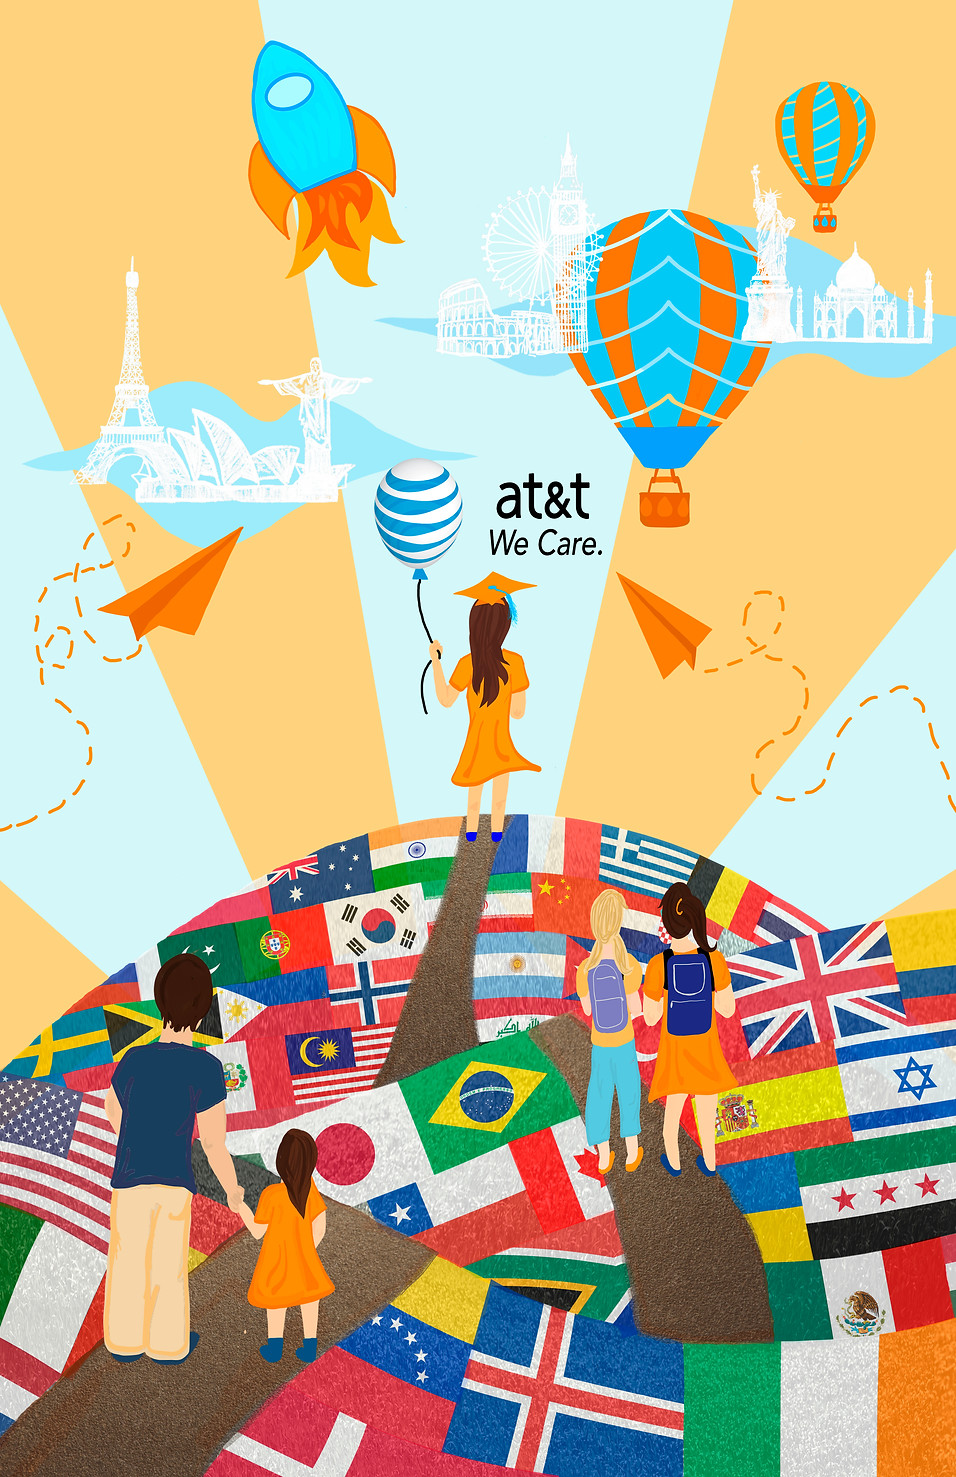 Digital Illustration & Softcell advertisement design for AT&T